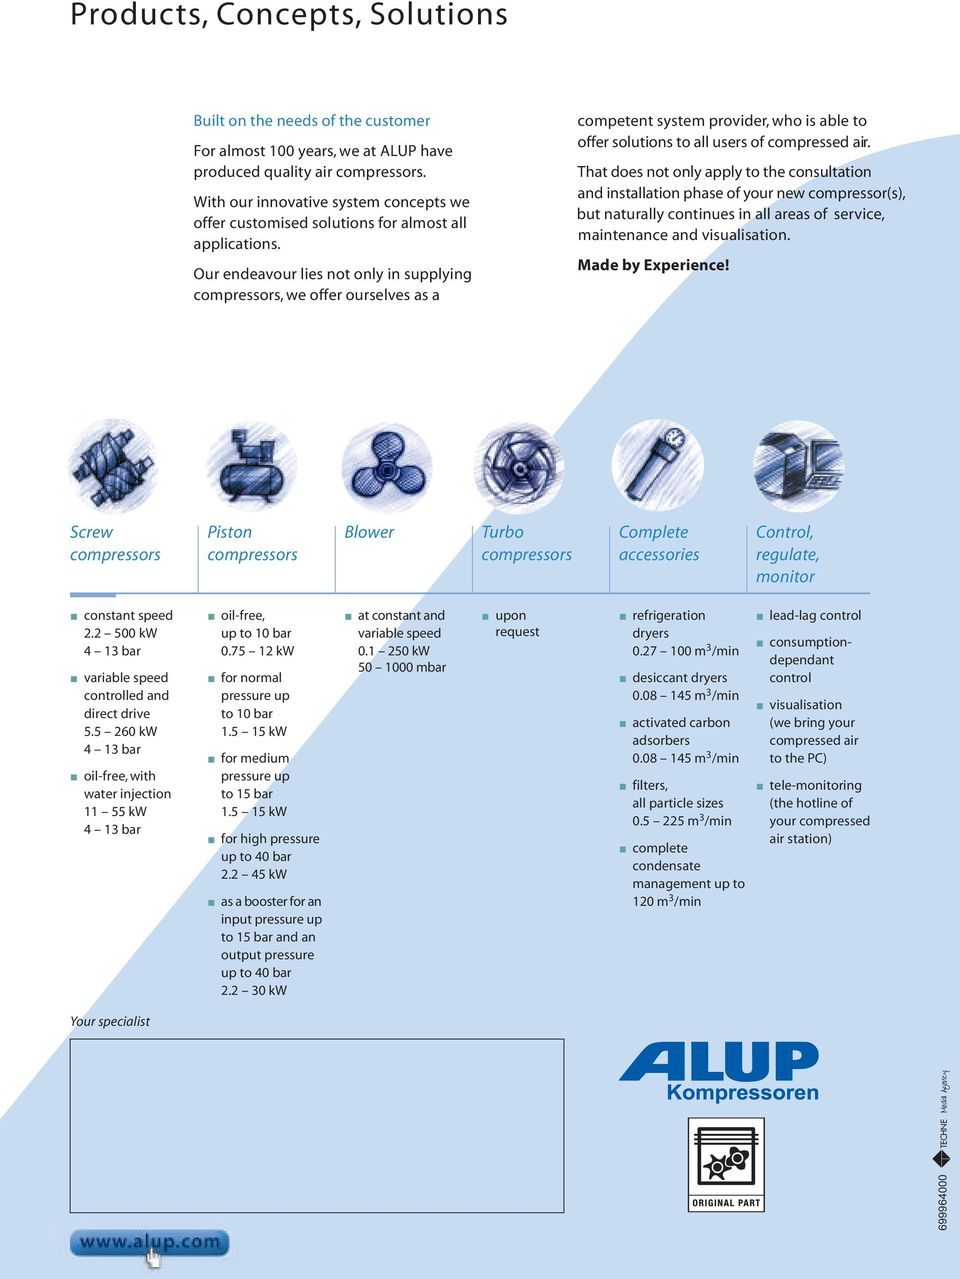 Our endeavour lies not only in supplying compressors, we offer ourselves as a competent system provider, who is able to offer solutions to all users of compressed air.